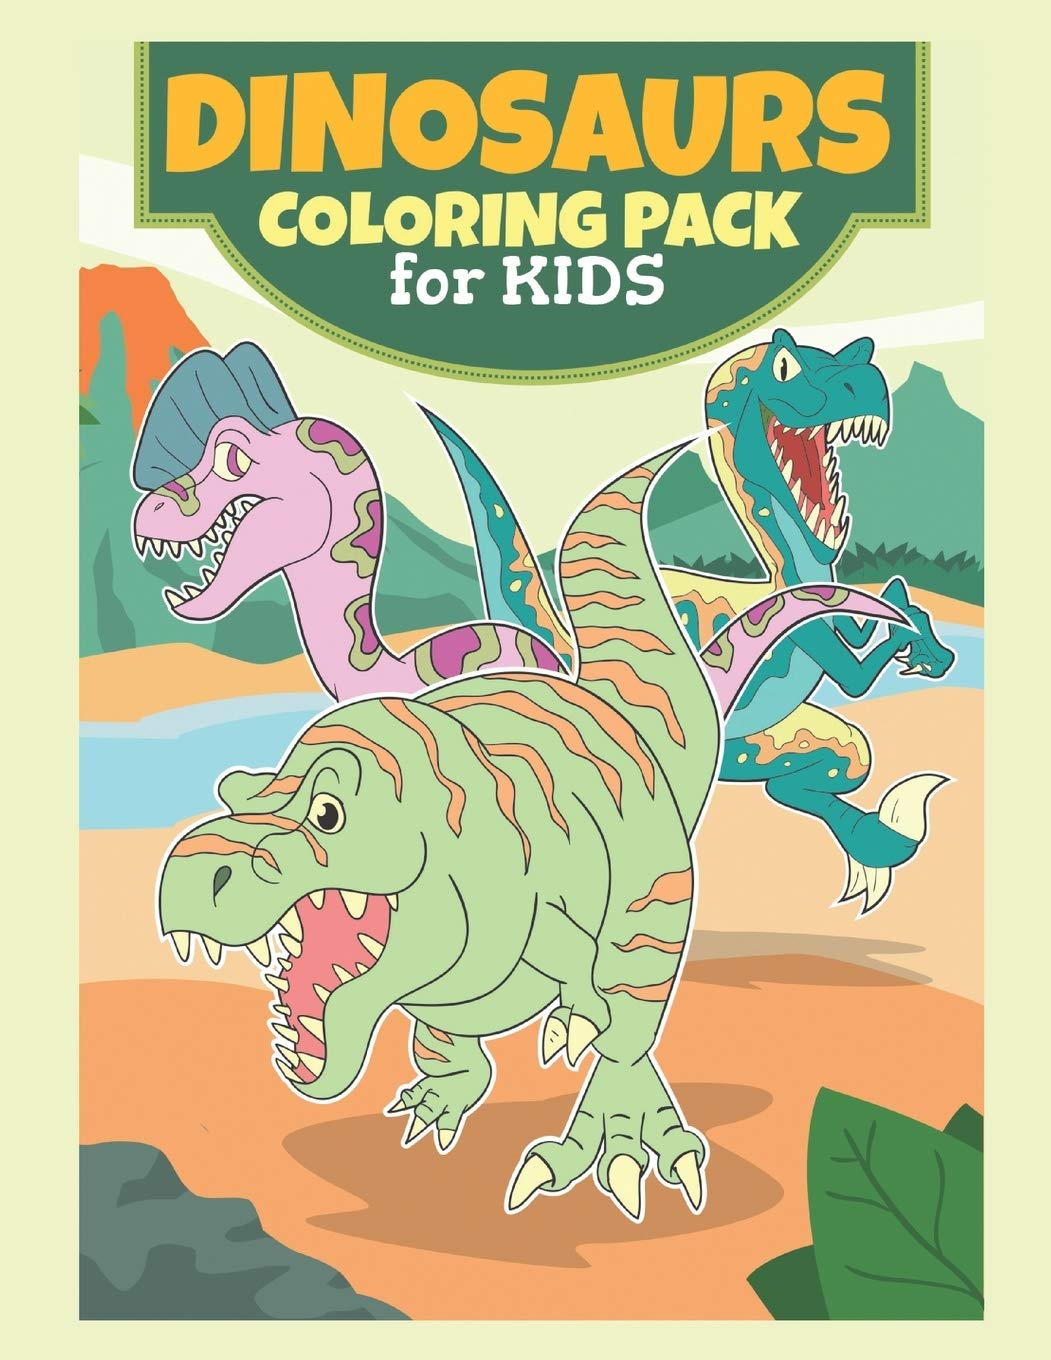 Dinosaurs Coloring Pack For Kids: Coloring Book For kids,Birthday Party Activity, Dino Coloring Book,60 Coloring Pages, 8 1/2 x 11 inches, Dinosaur ... Kids 4-8 Years Old, Dinosaurs Coloring Pages.: Amazon.es: MH,